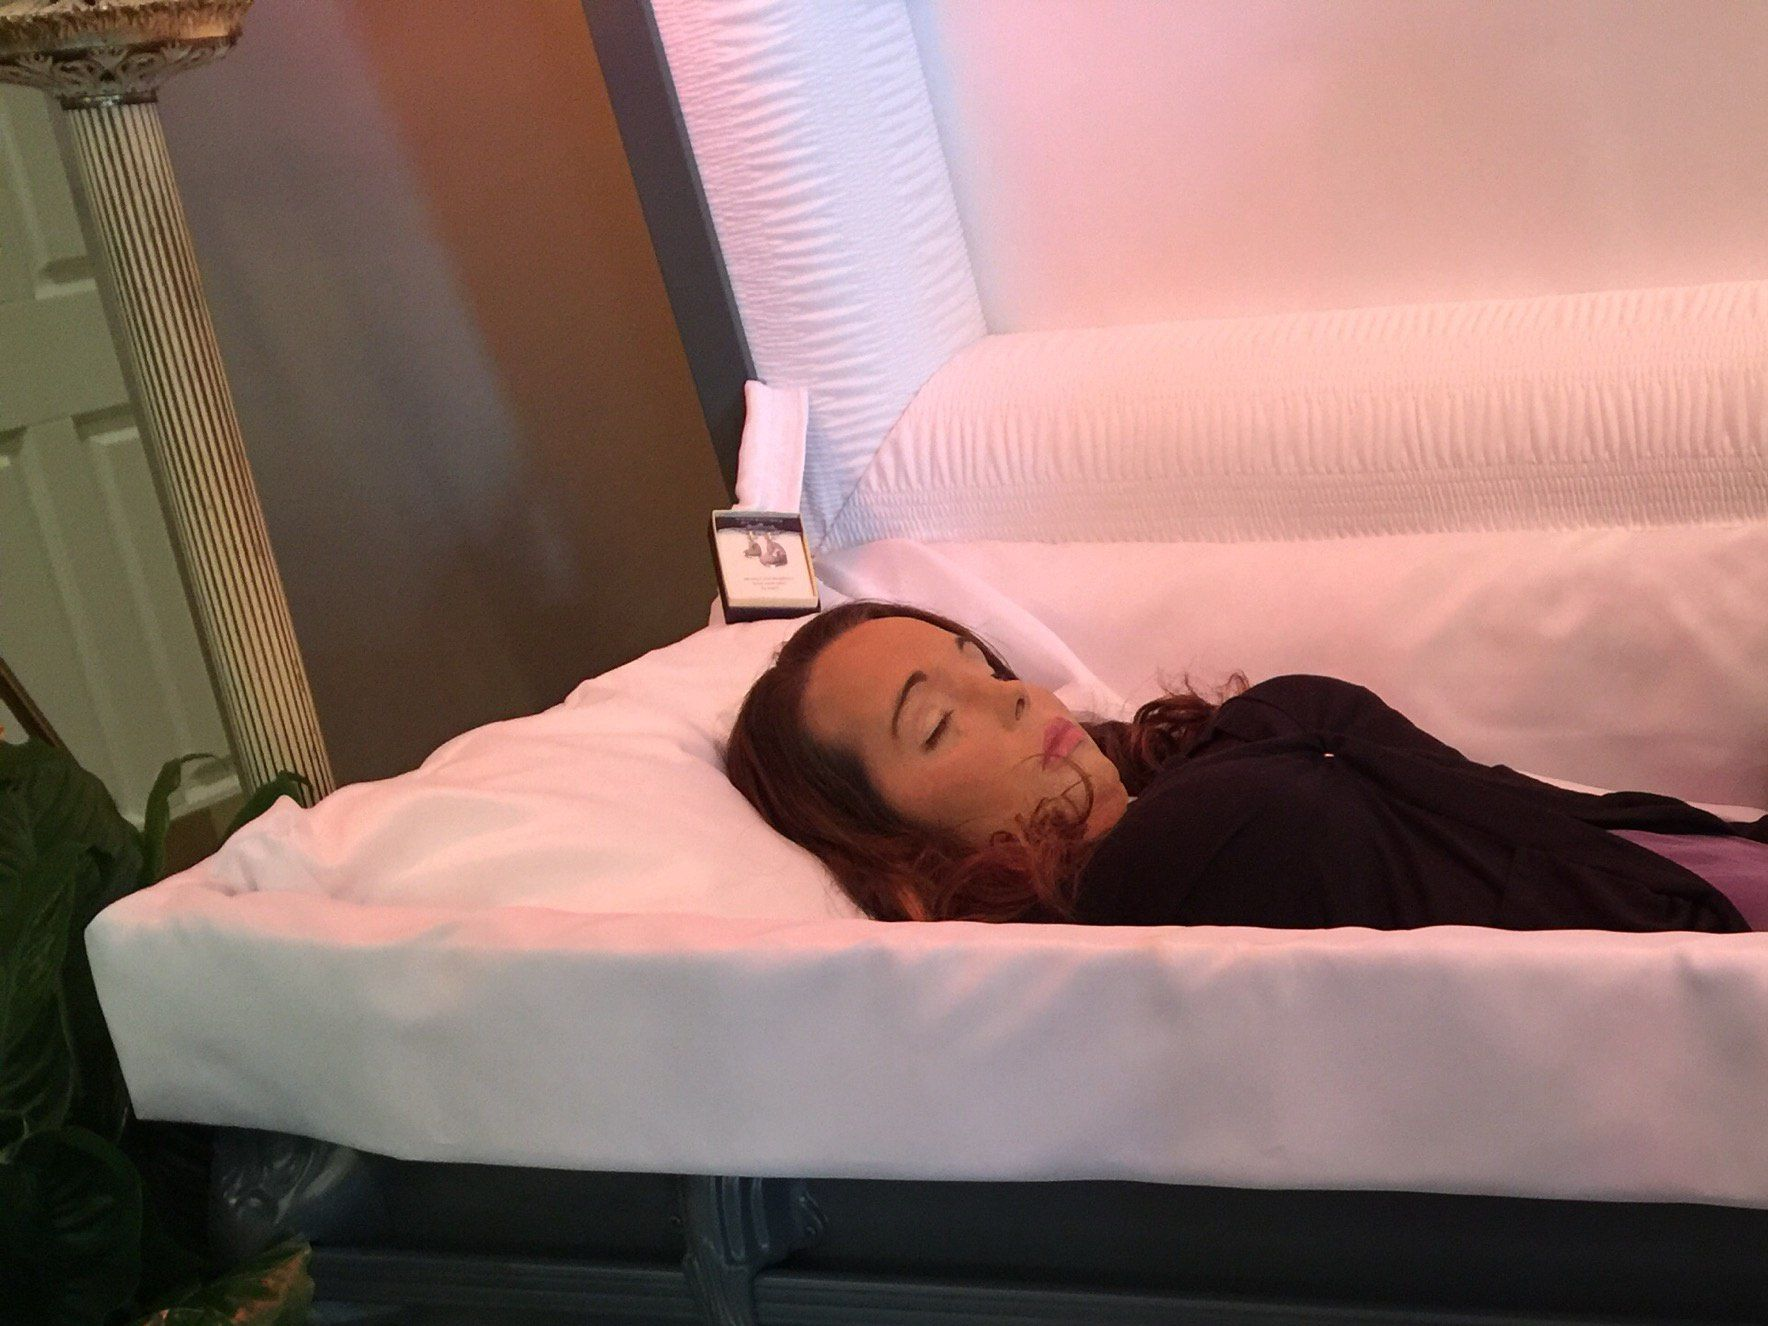 Necrobabes Postmortem: An American Woman In Her Open Casket During Her Funeral